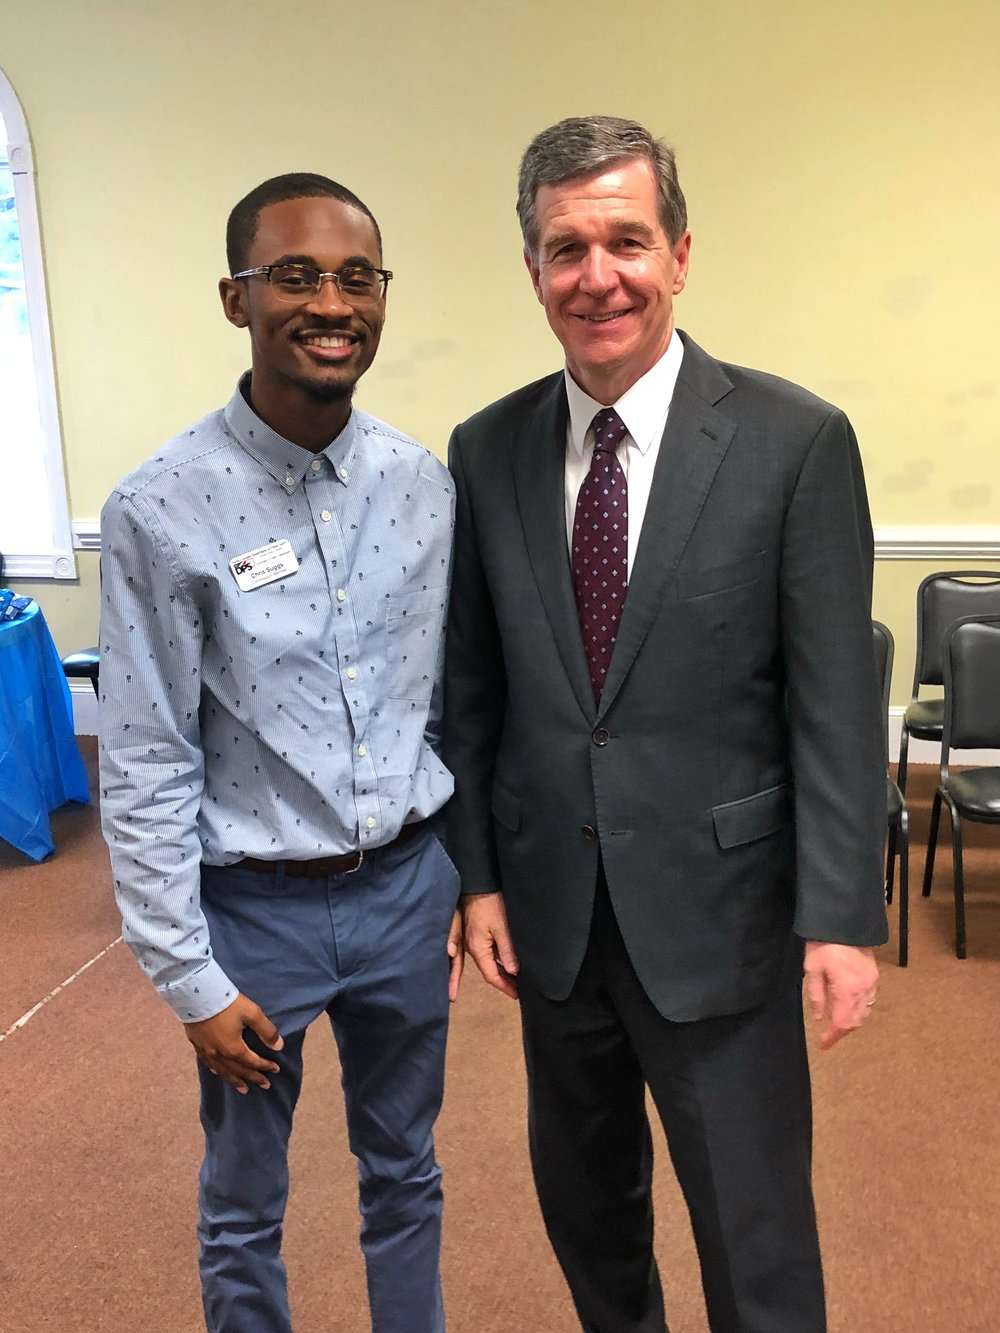 Suggs and Governor Roy Cooper at an event in Snow Hill, North Carolina on August 14.